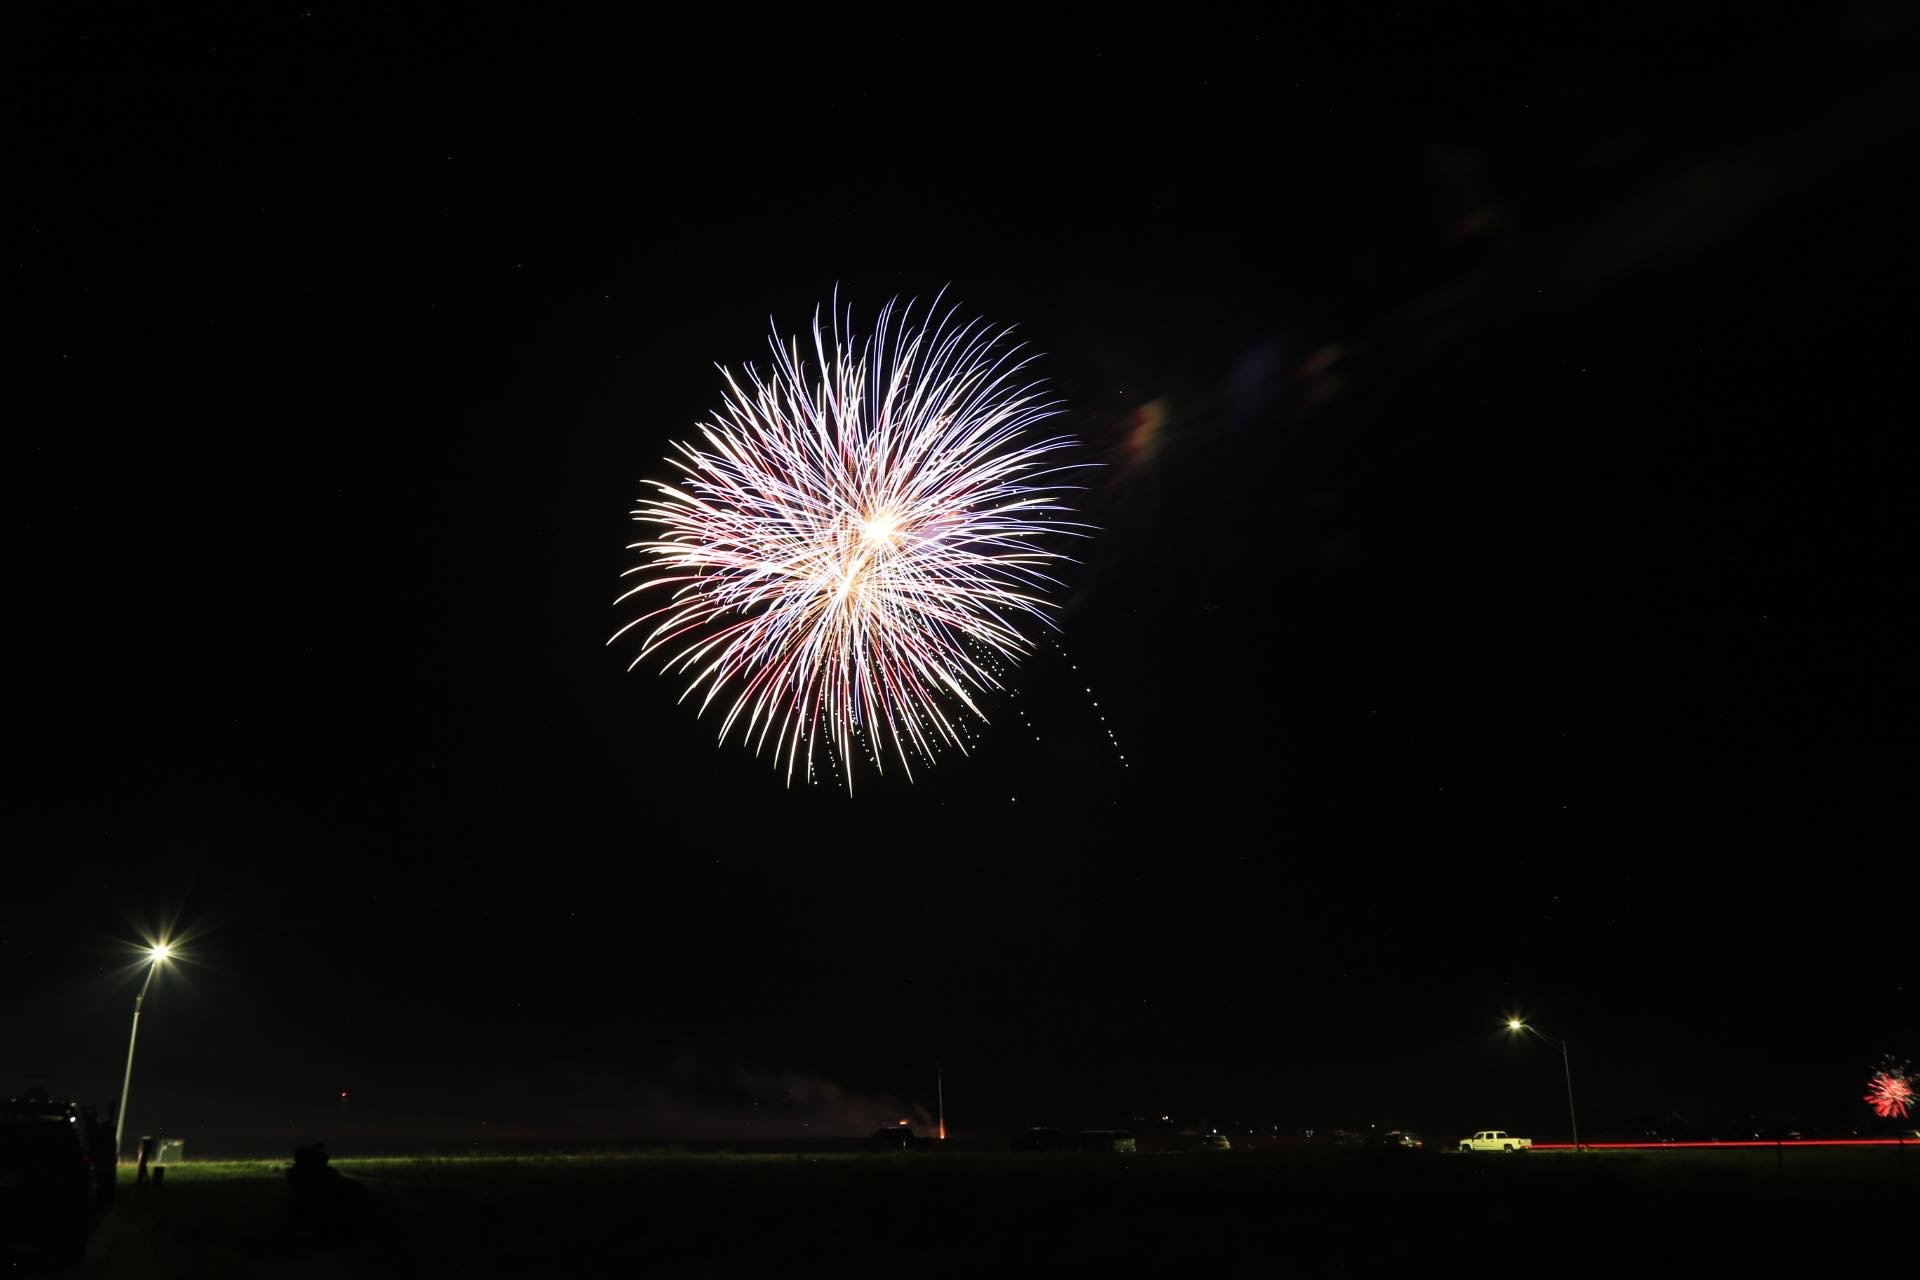 Photos: City of Sidney fireworks show, July 3